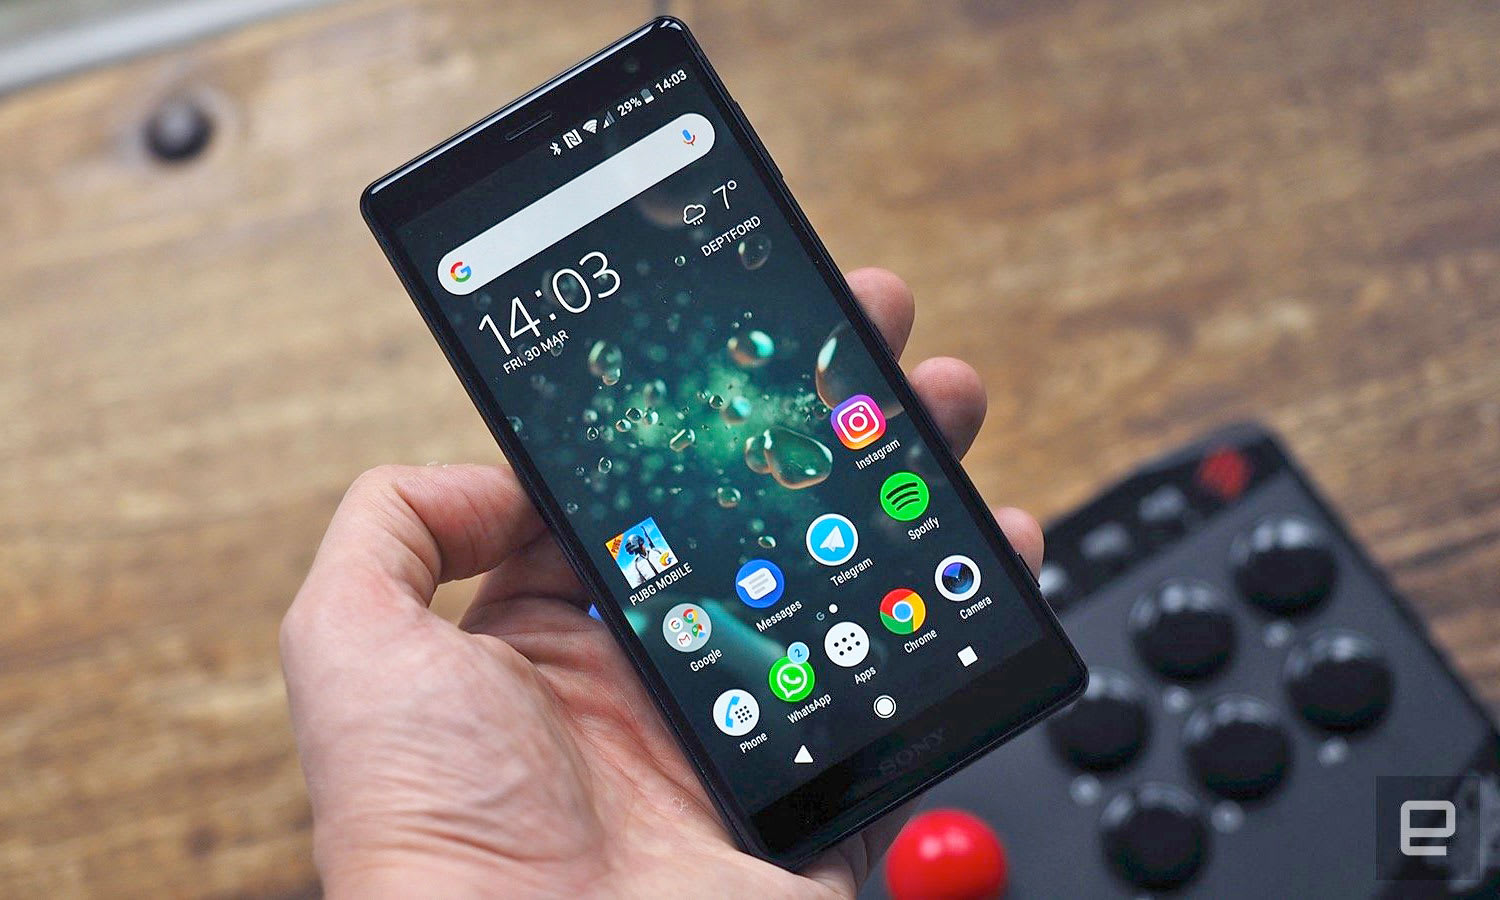 Sony is crafting a new version of its Android launcher